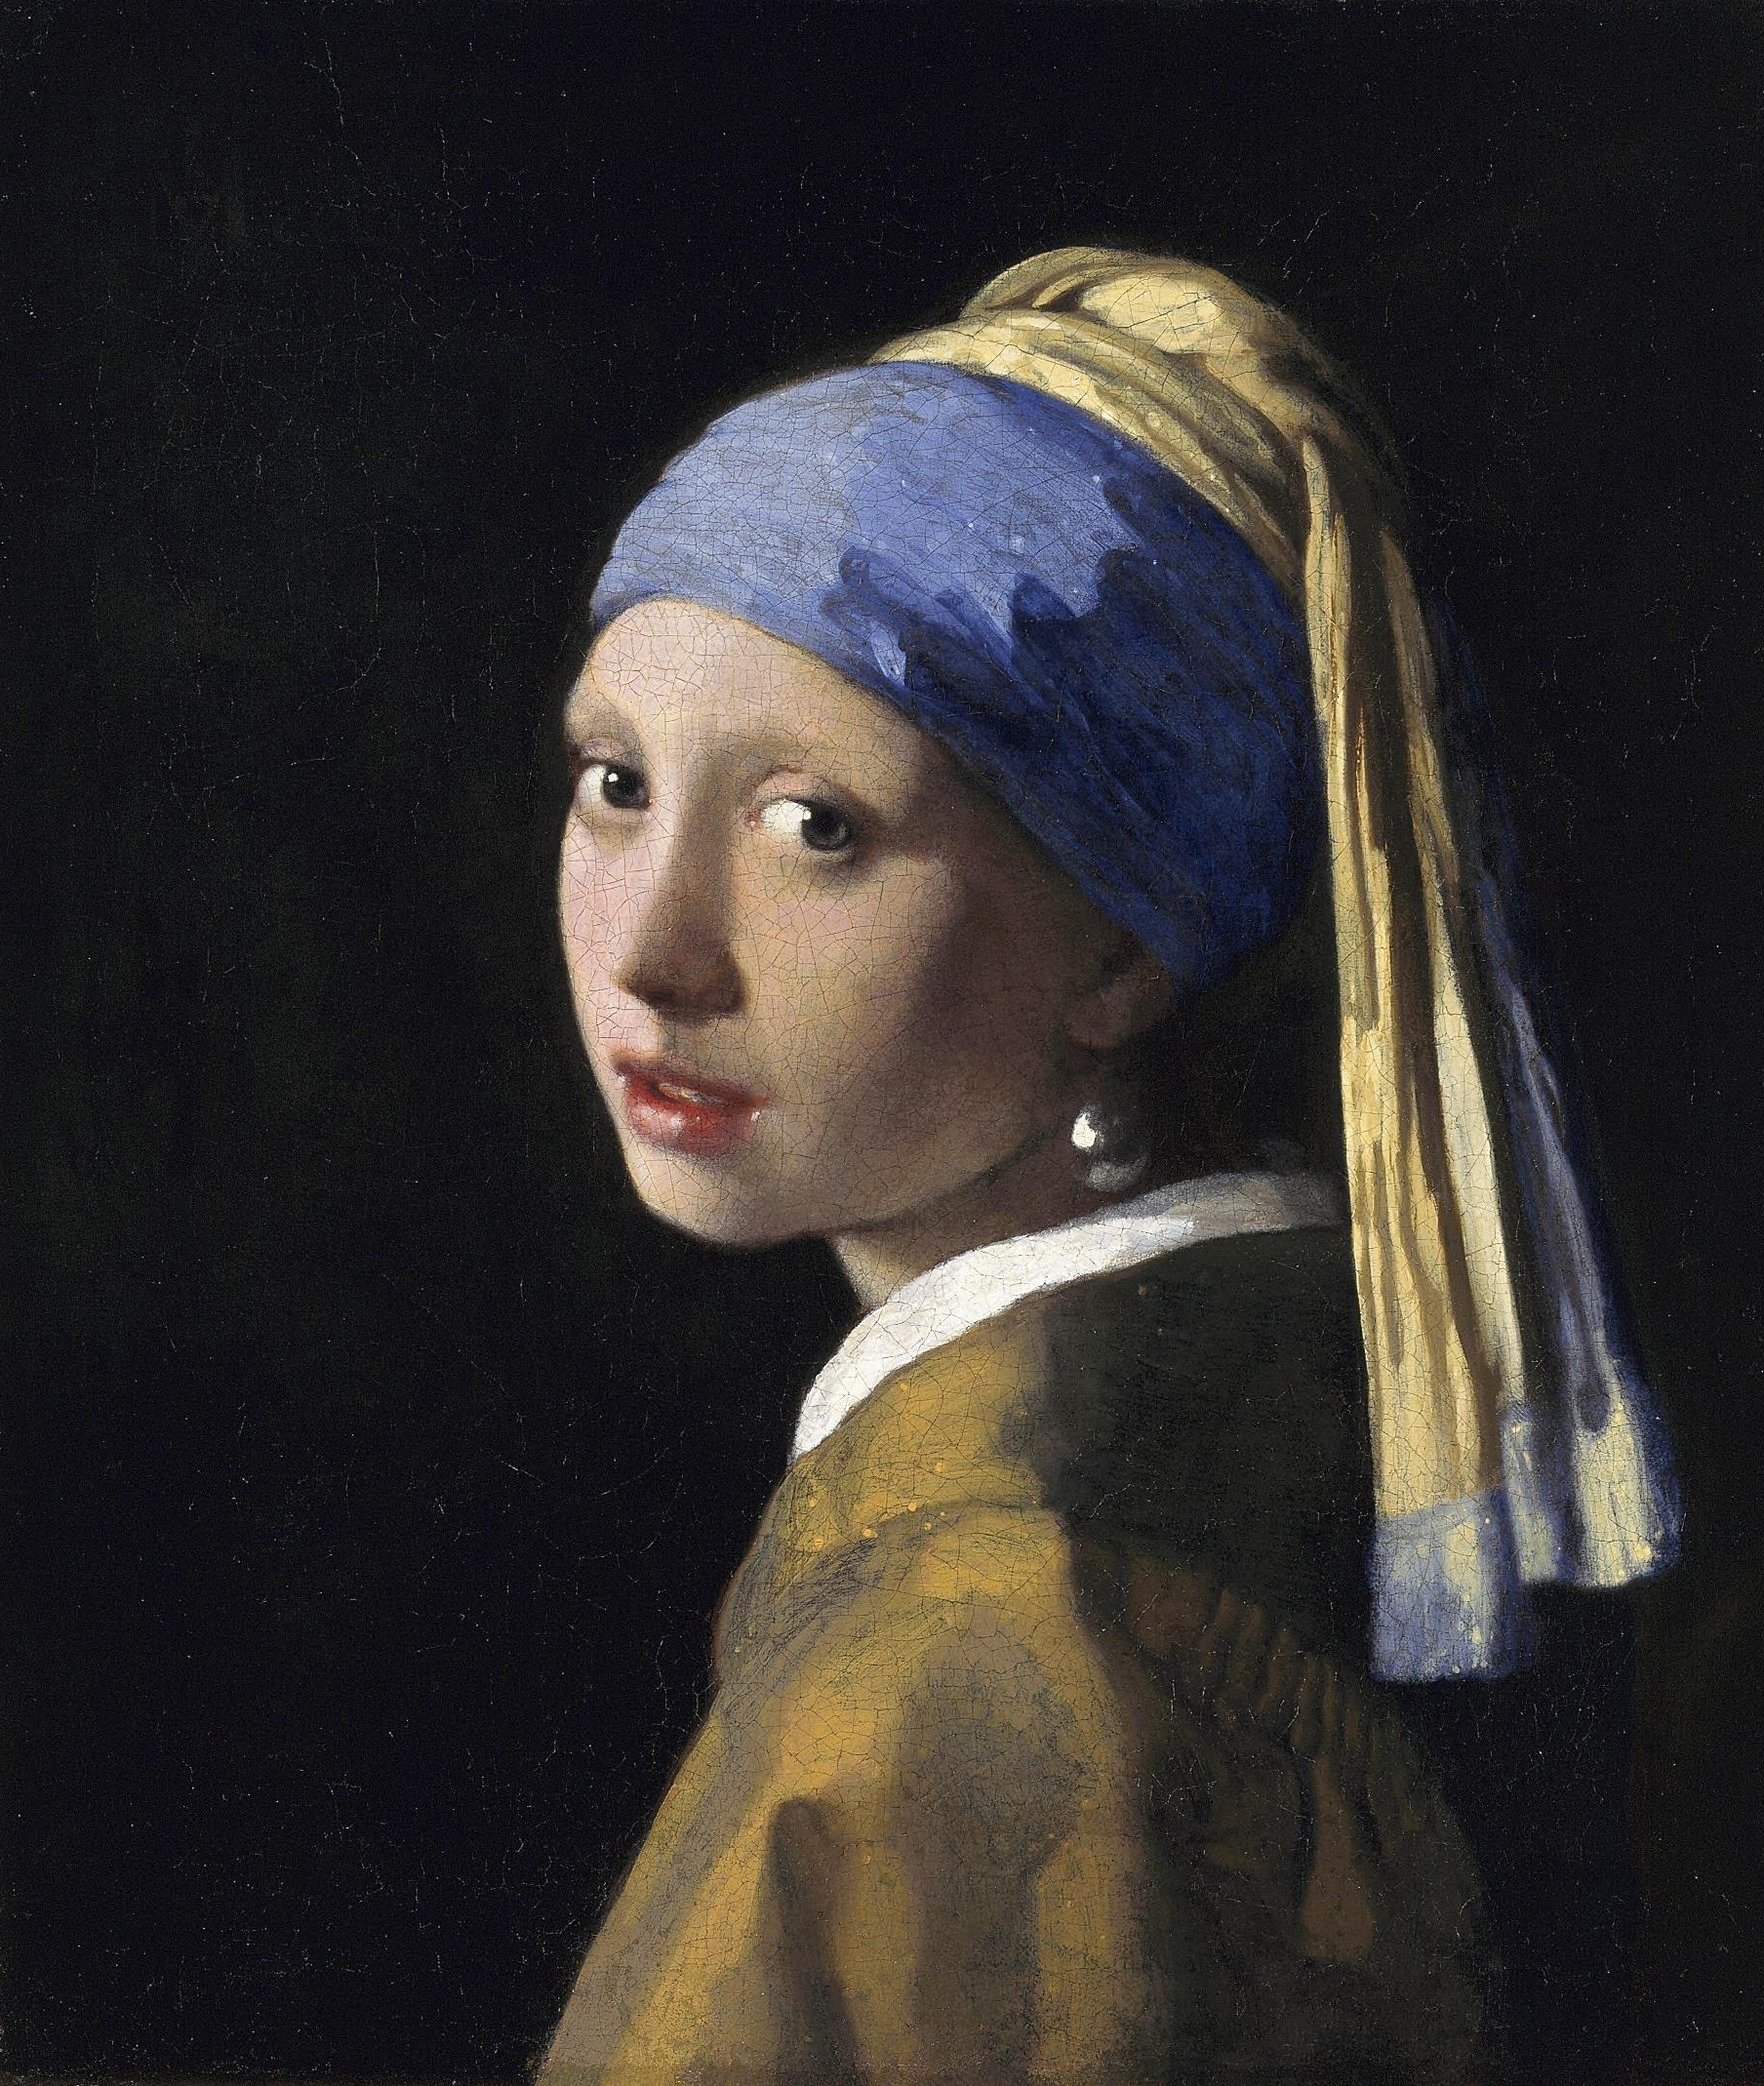 [صورة مرفقة: Girl_with_a_Pearl_Earring.jpg]